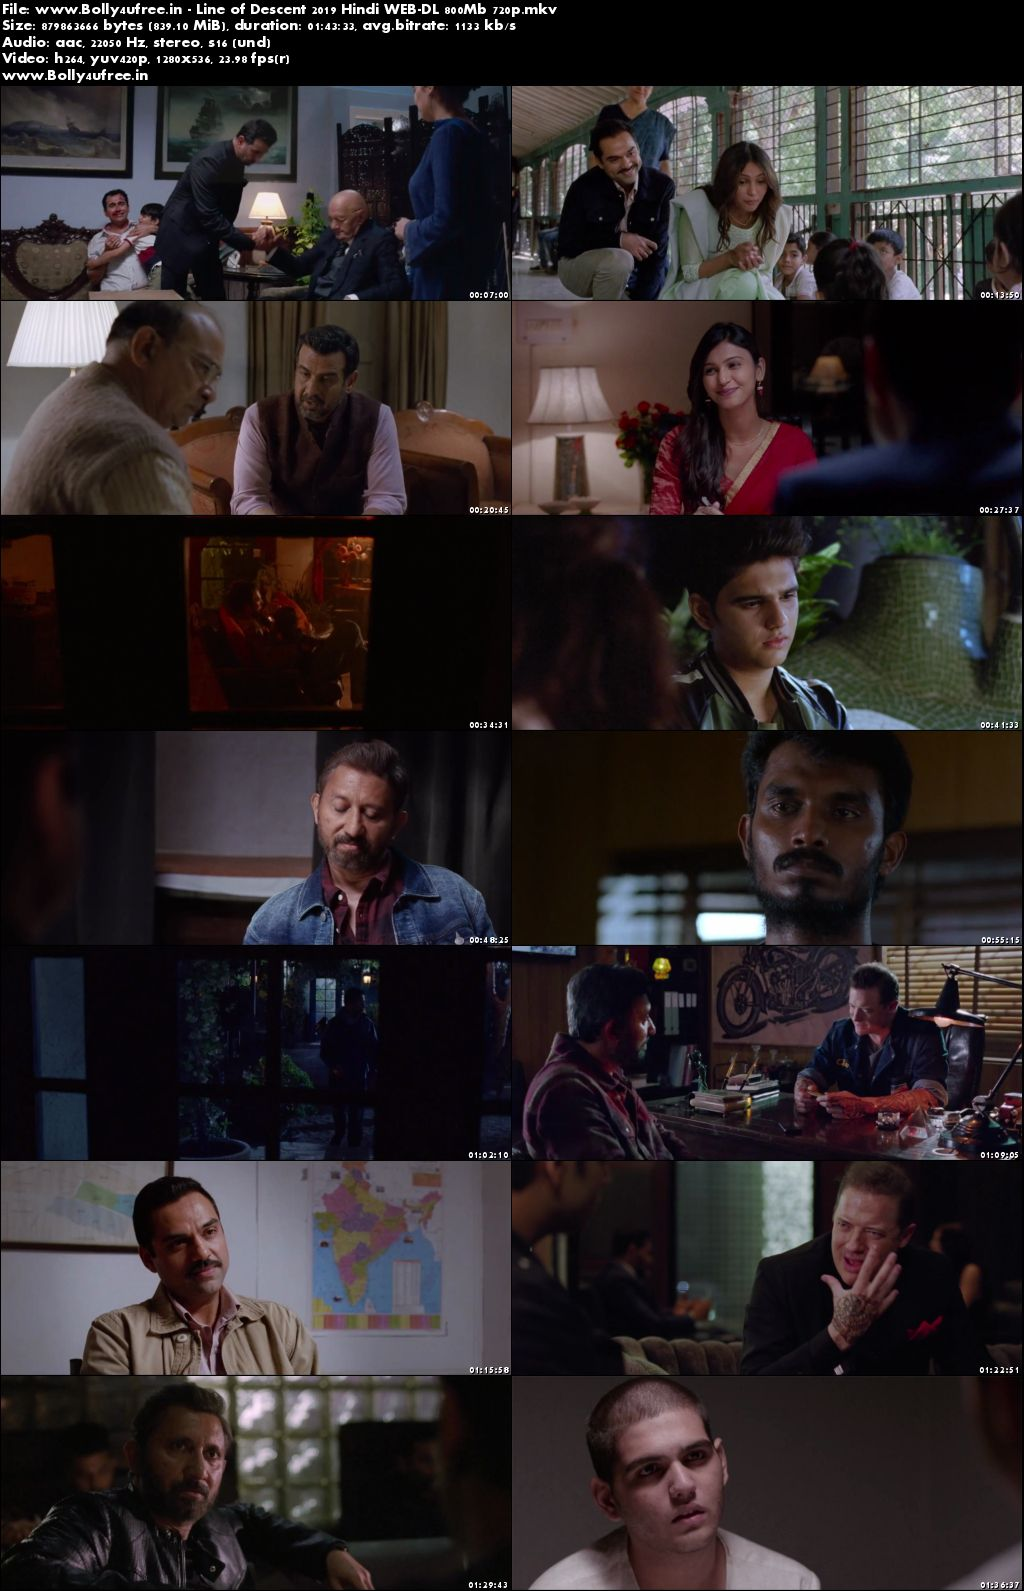 Line of Descent 2019 Hindi Movie Download WEB-DL 800Mb 720p